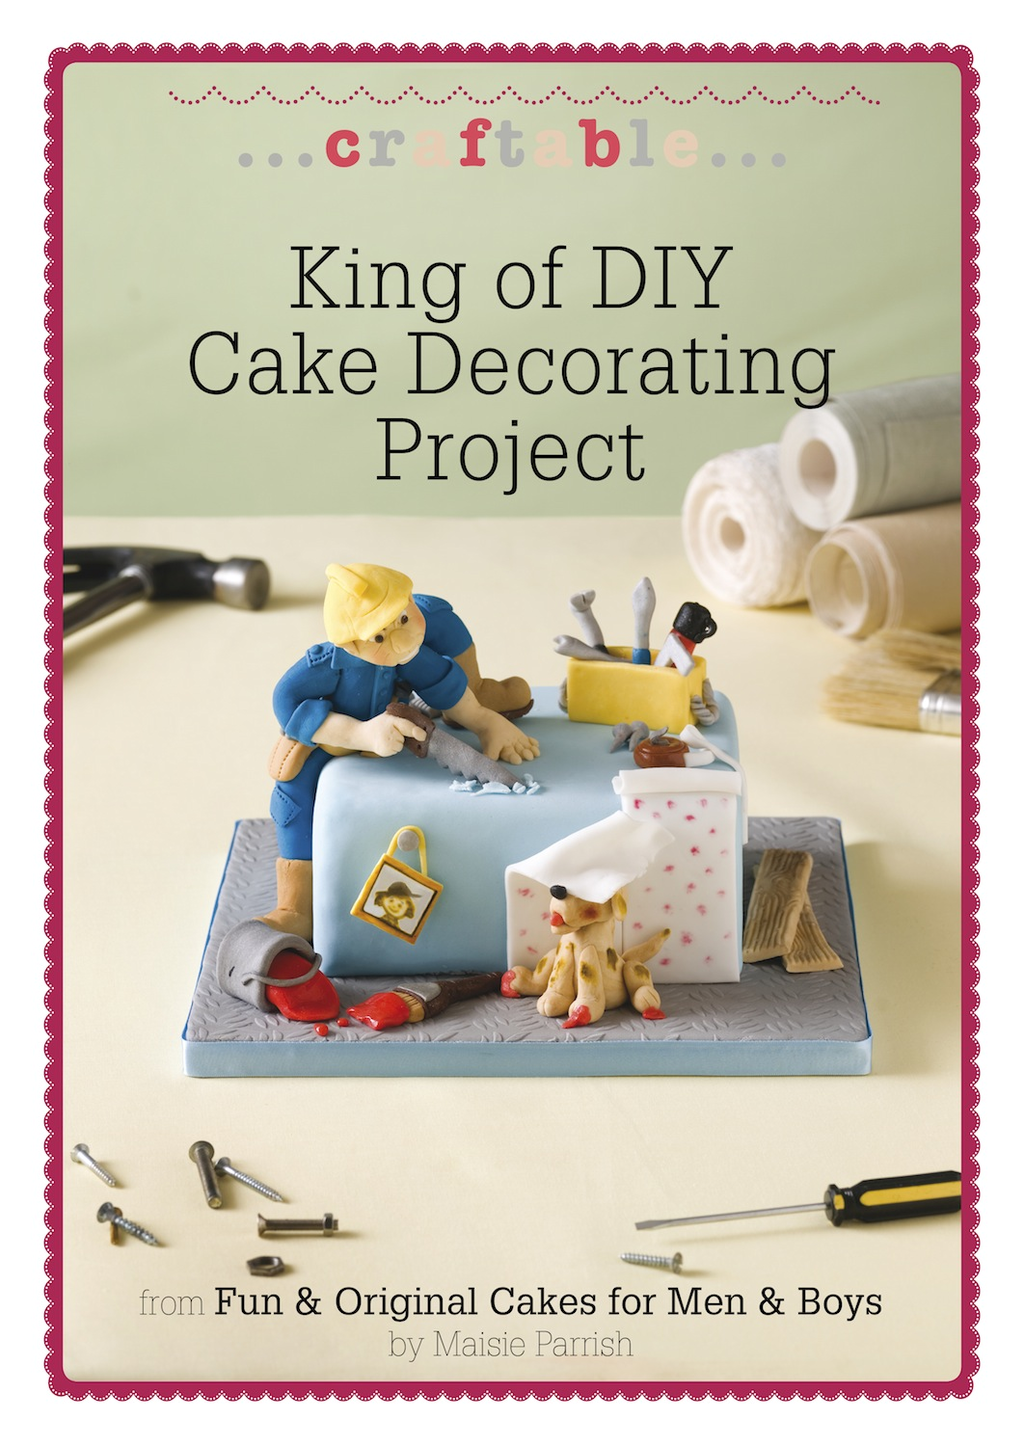 King of DIY Cake Decorating Project: A fun cake to make for men & boys